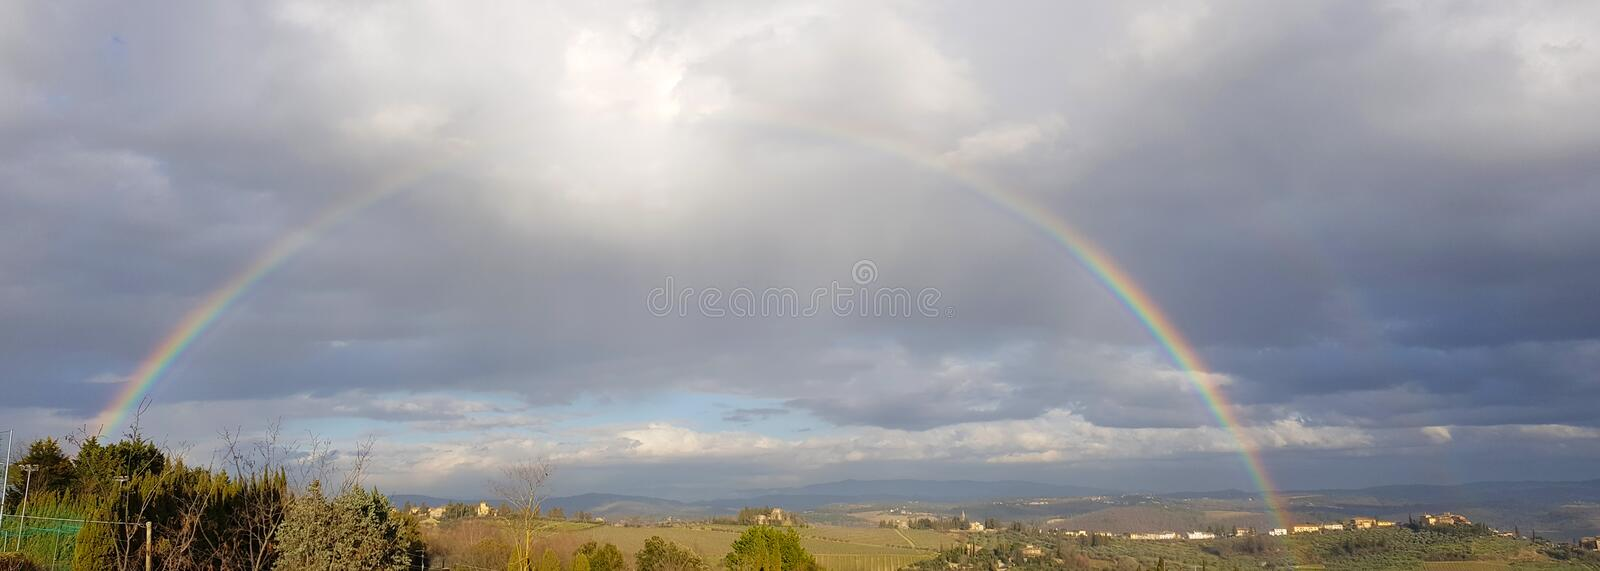 Spectacular complete rainbow over the Chianti hills, Tuscany, Italy royalty free stock image